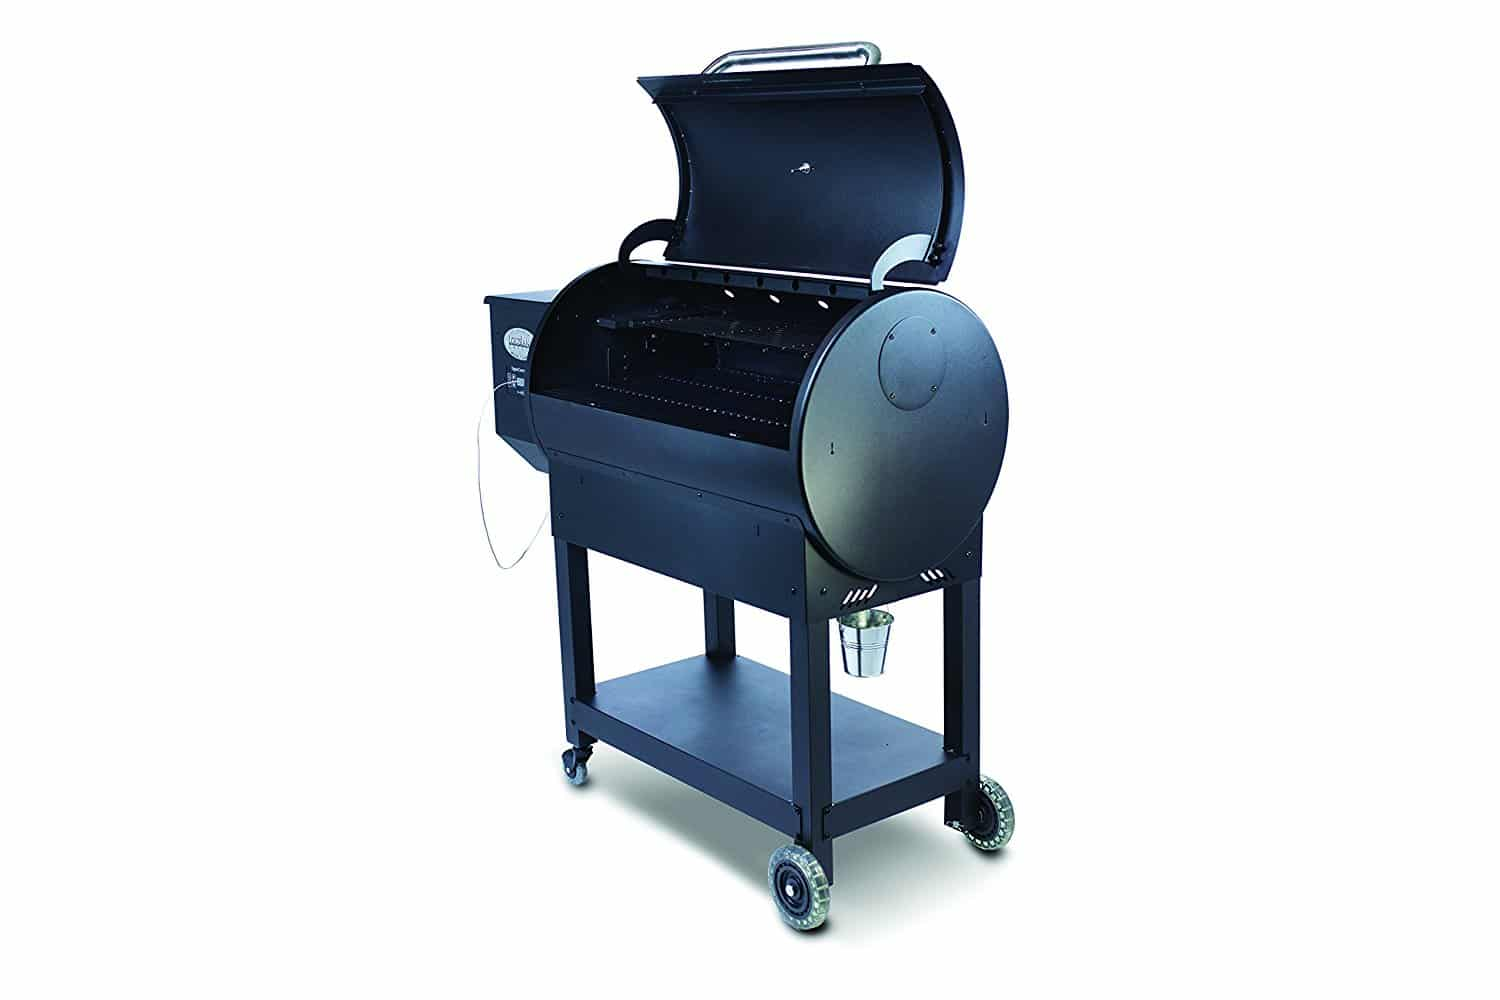 Louisiana Grills LG 900 Pellet Grill Review And Rating - The